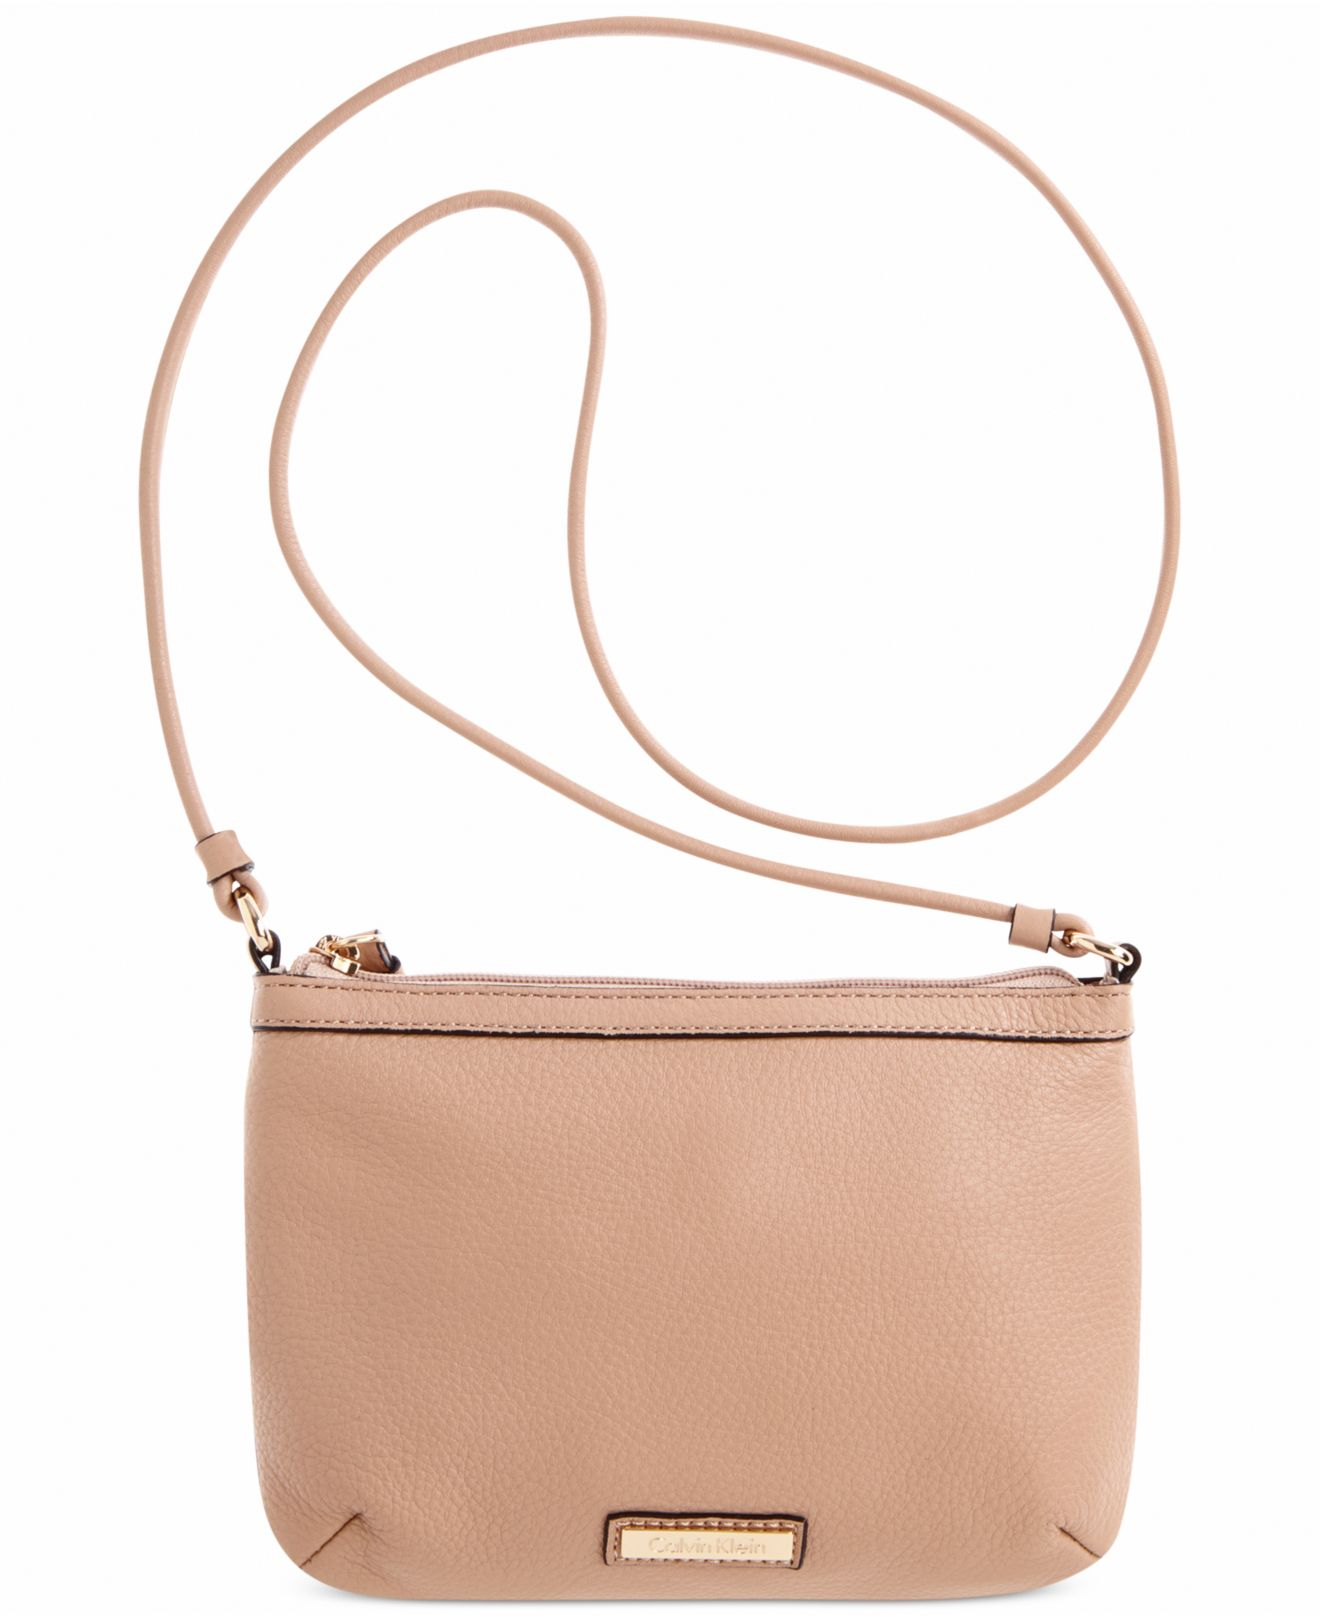 d49c962cacd Gallery. Previously sold at: Macy's · Women's Calvin Klein Crossbody